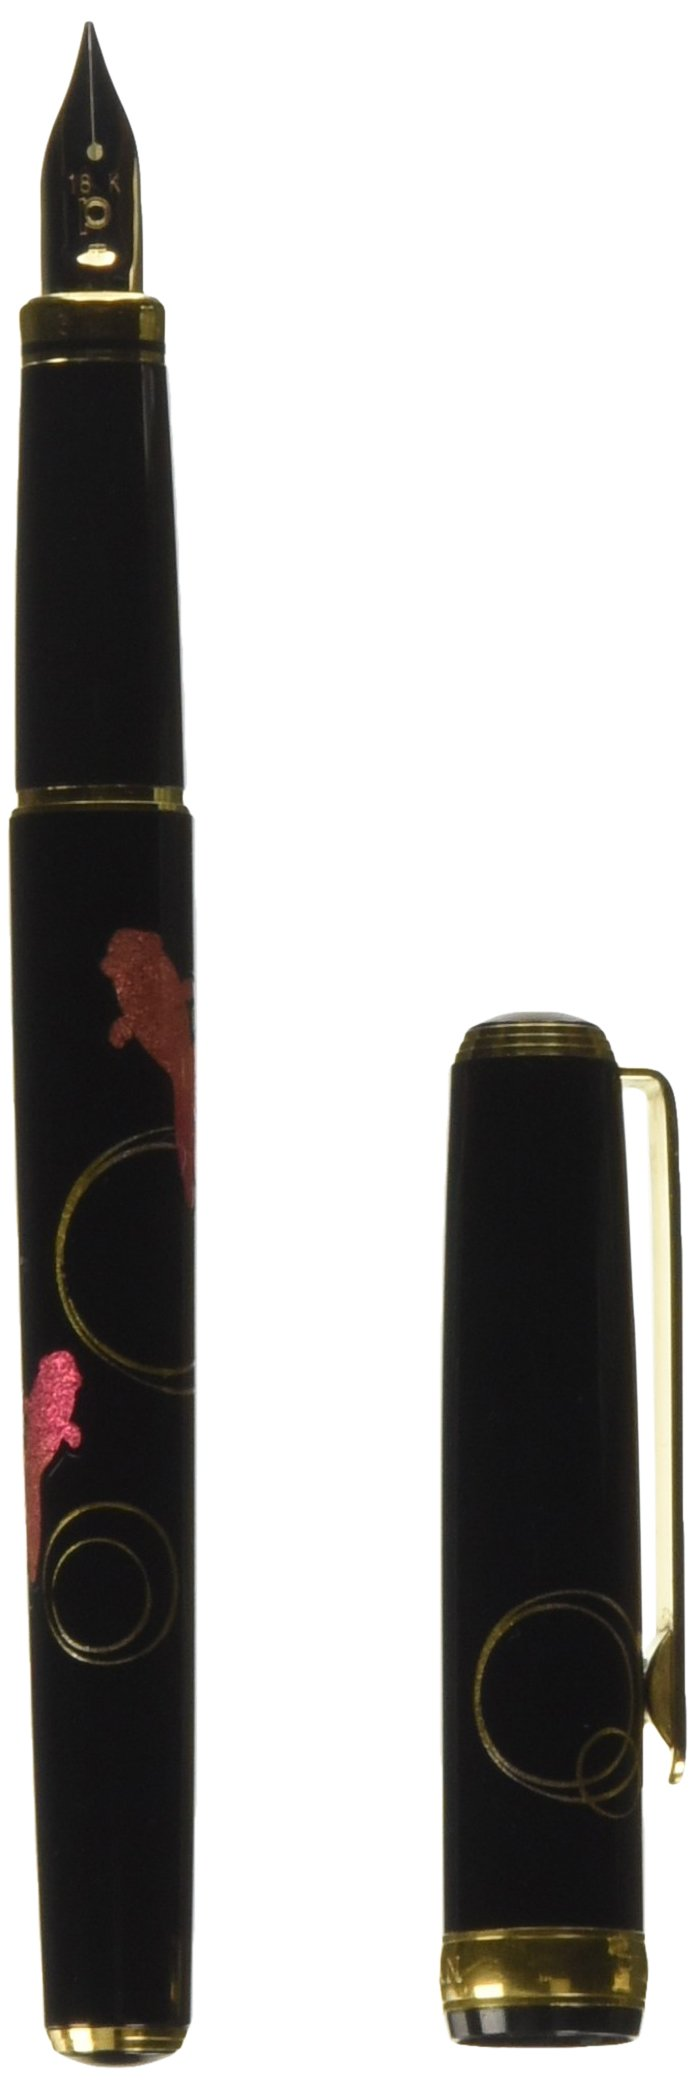 Platinum Maki-e fountain pen Kanazawa foil goldfish in character (M) PTL-15000H # 24-3 (japan import) by Purachinaman'nenhitsu Co., Ltd.